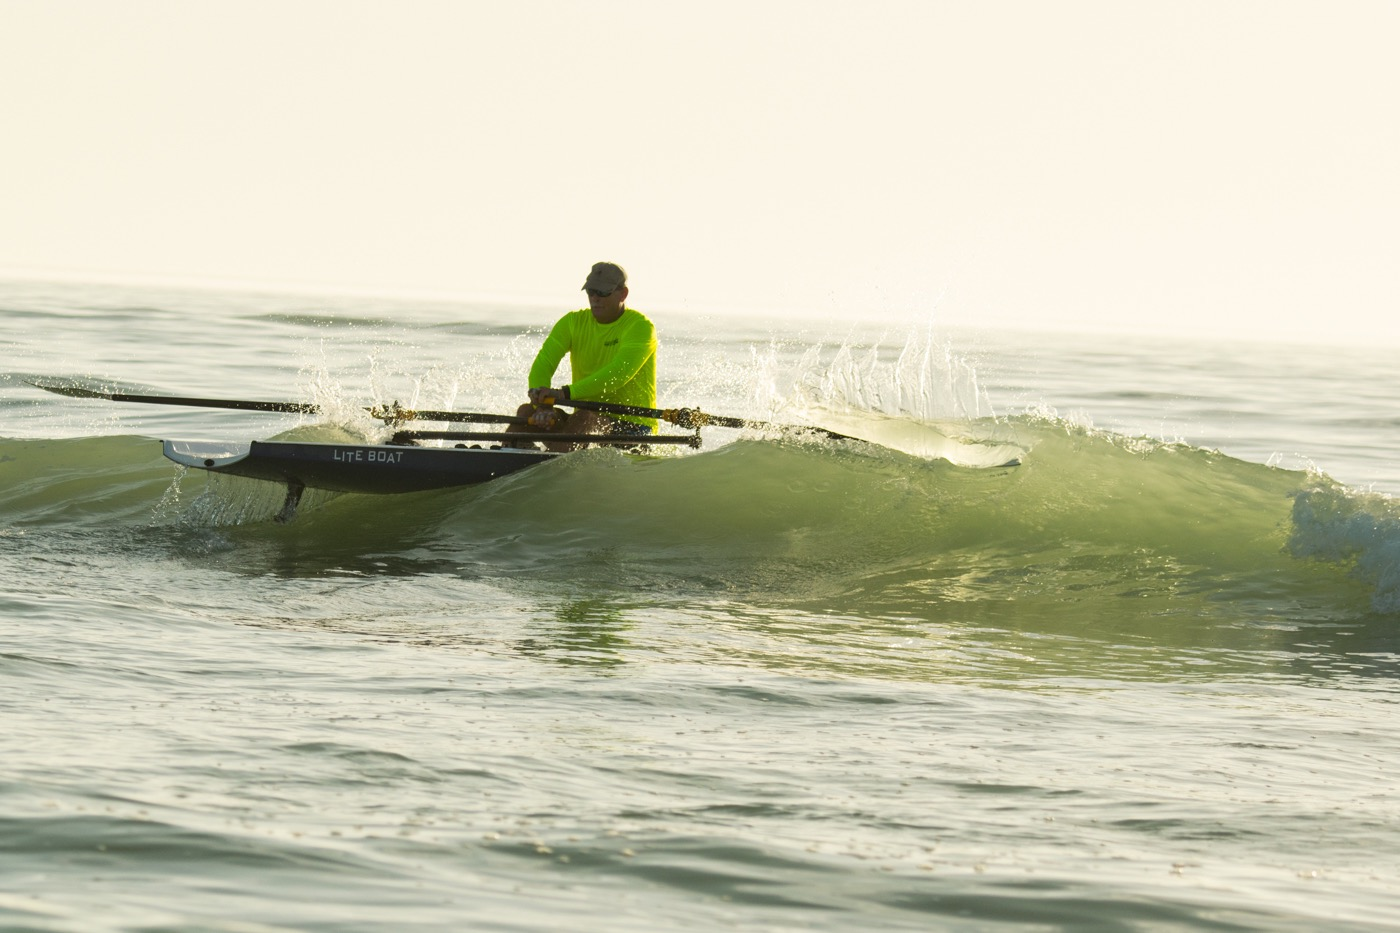 LiteRace 1X - Look at that oar slicing into the wave, this was a great shot!